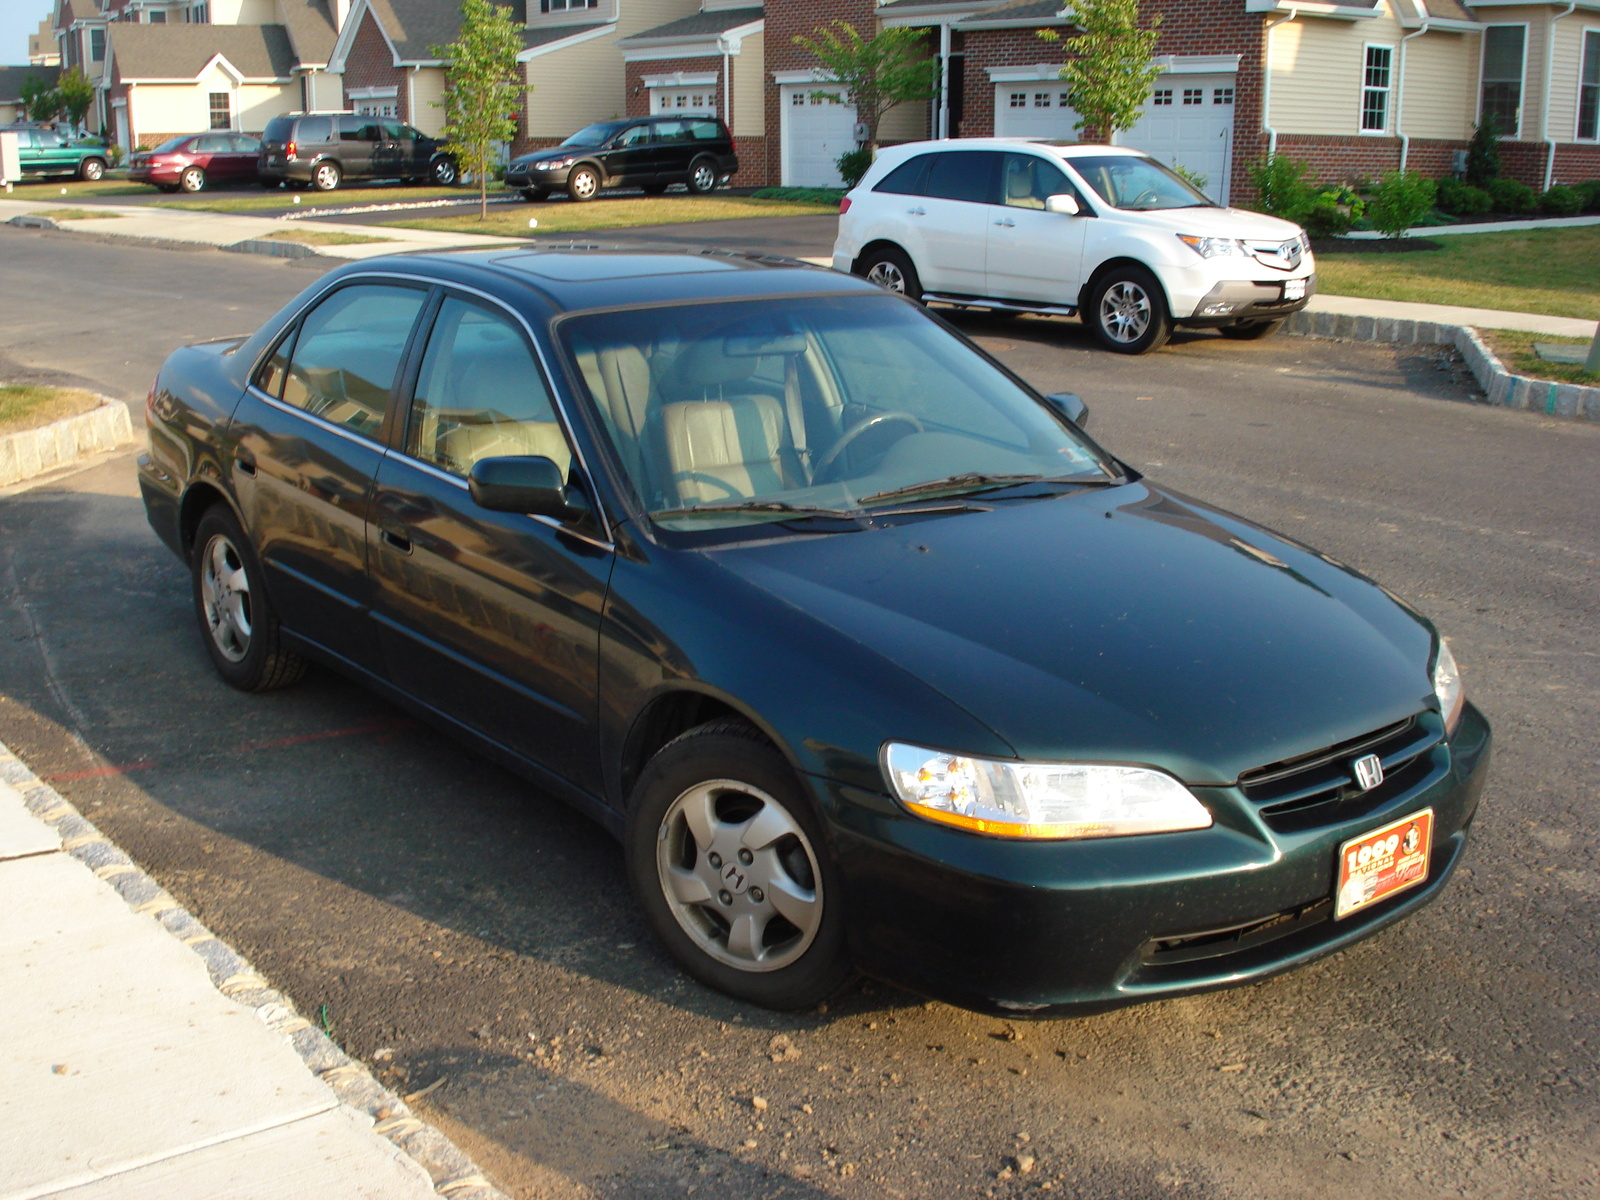 2008 altima 4 door on rims with 1999 Honda Accord Pictures C2125 on 2002 Honda Accord Pictures C2105 besides 2012 Rs5 likewise For Sale in addition 157932 in addition Cr V02.